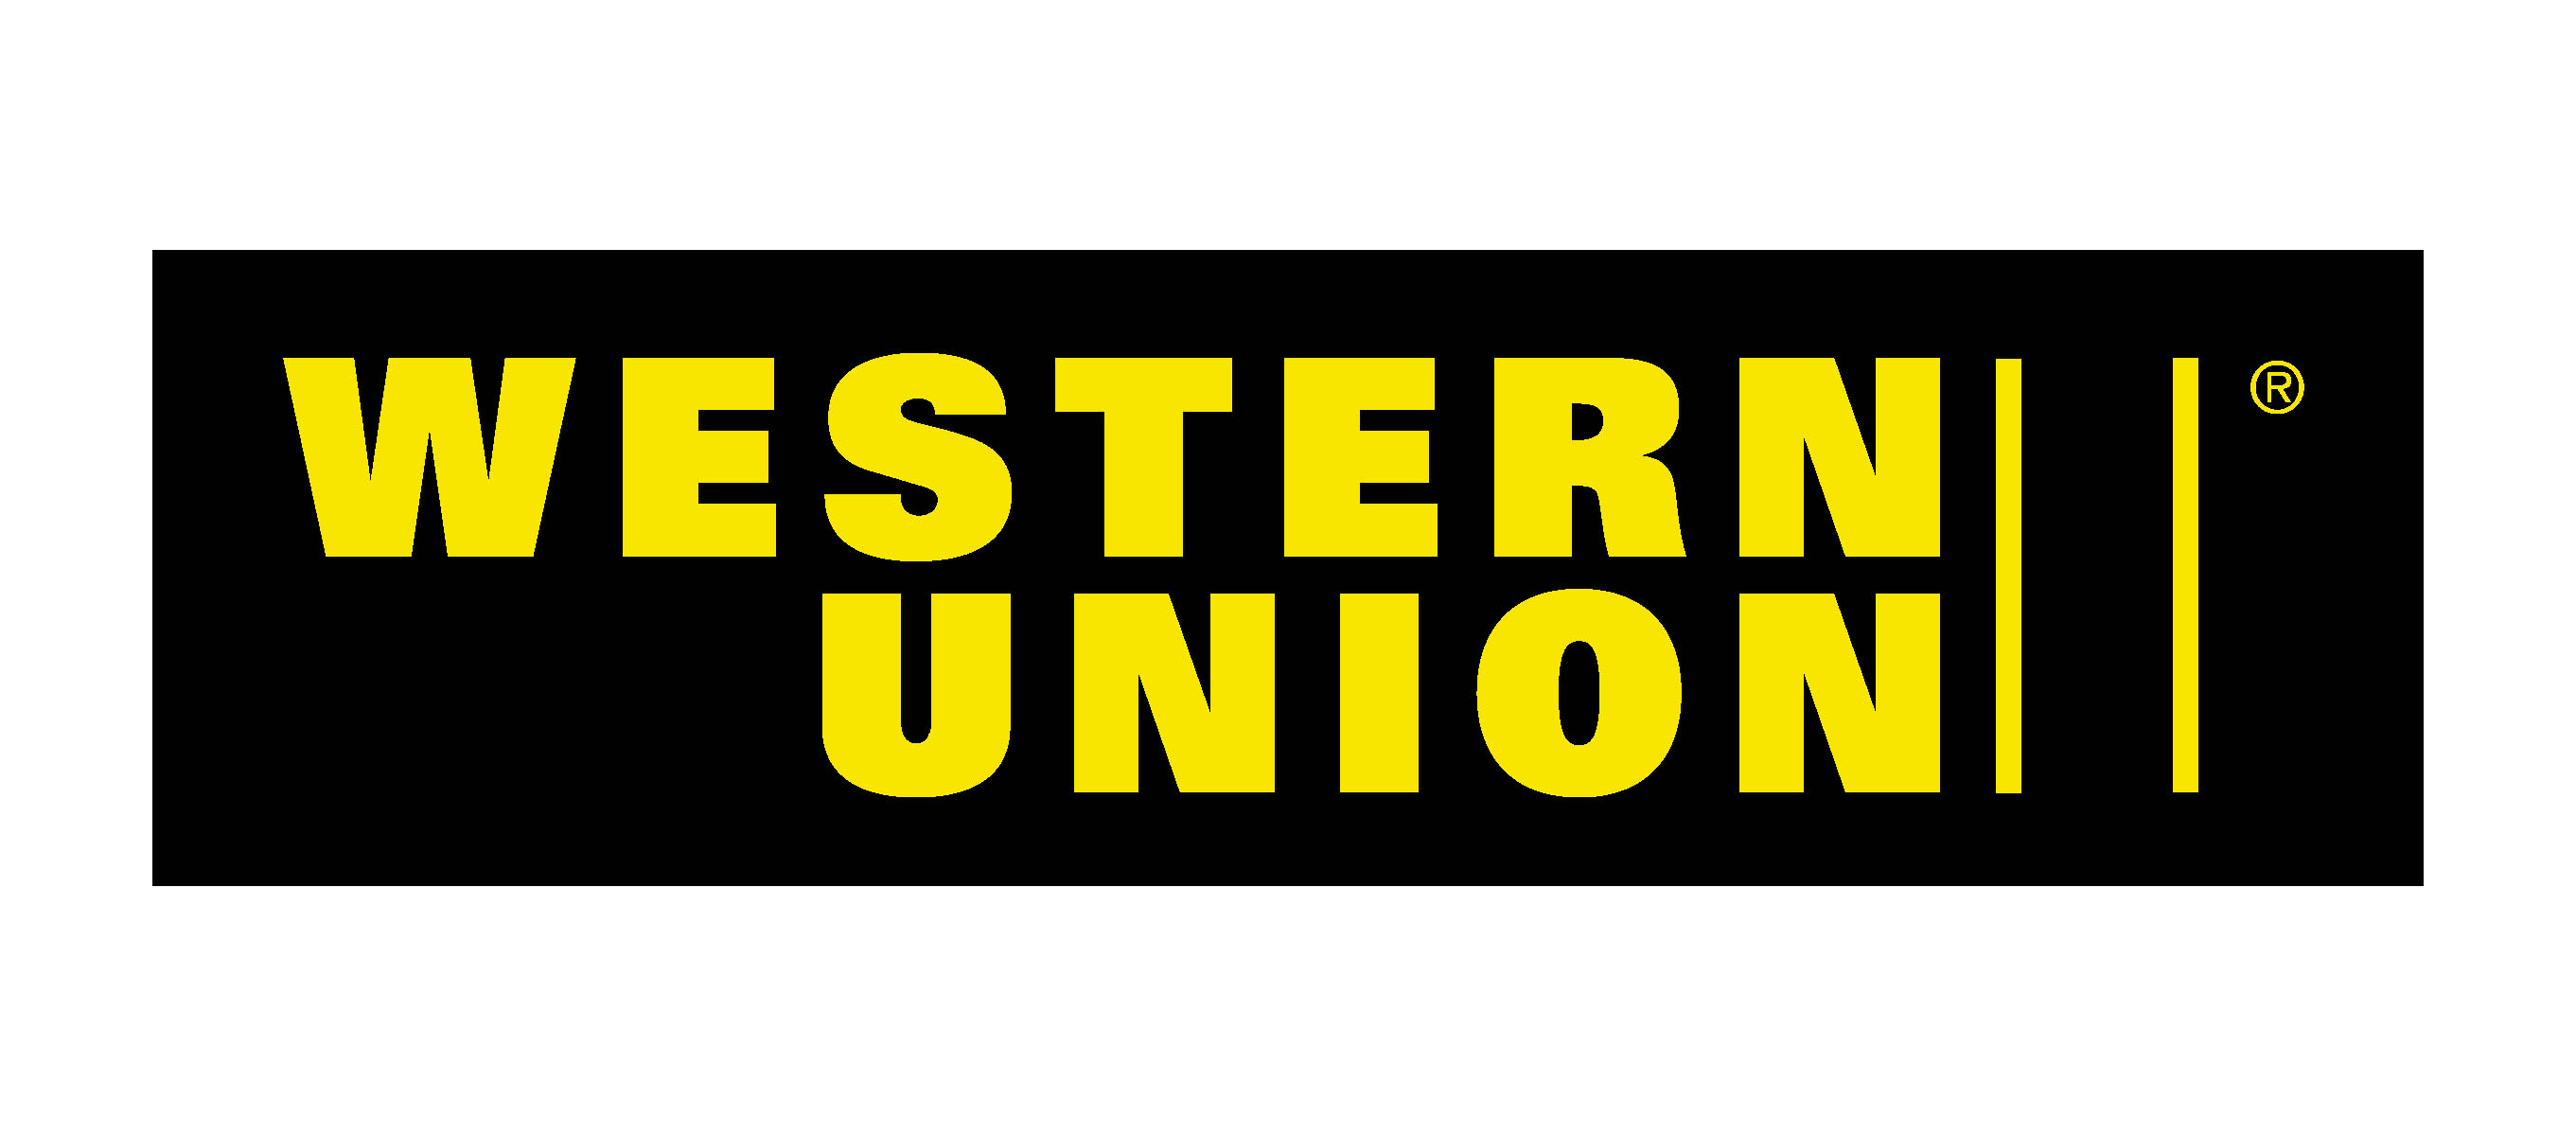 NEW SETTLEMENT! Get $250 From Western Union! No Receipt Needed!.